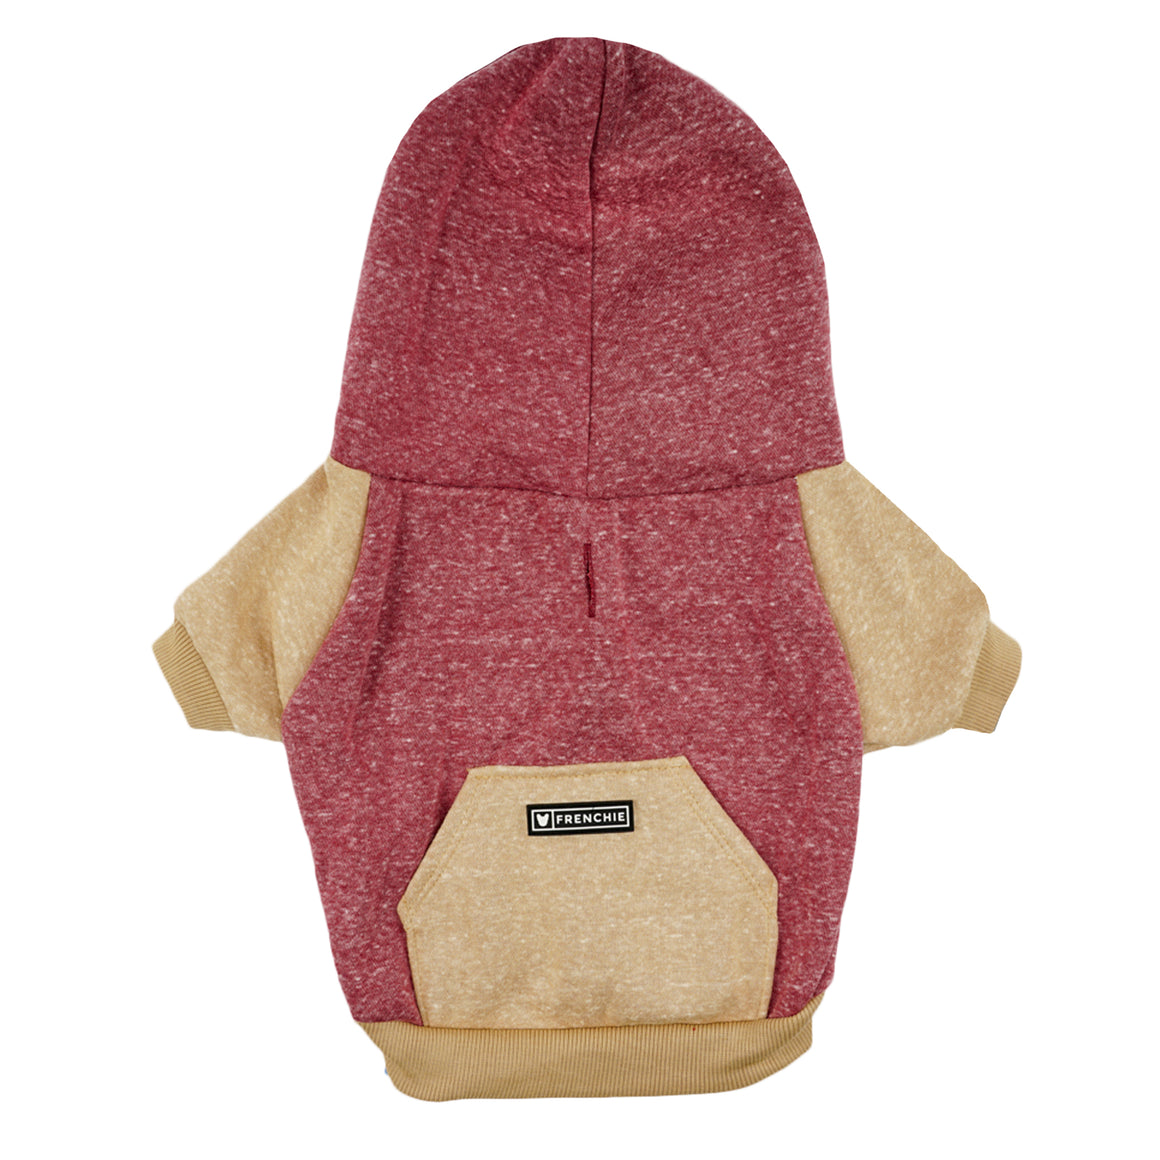 Frenchie Dog Hoodie - MAROON AND TAN